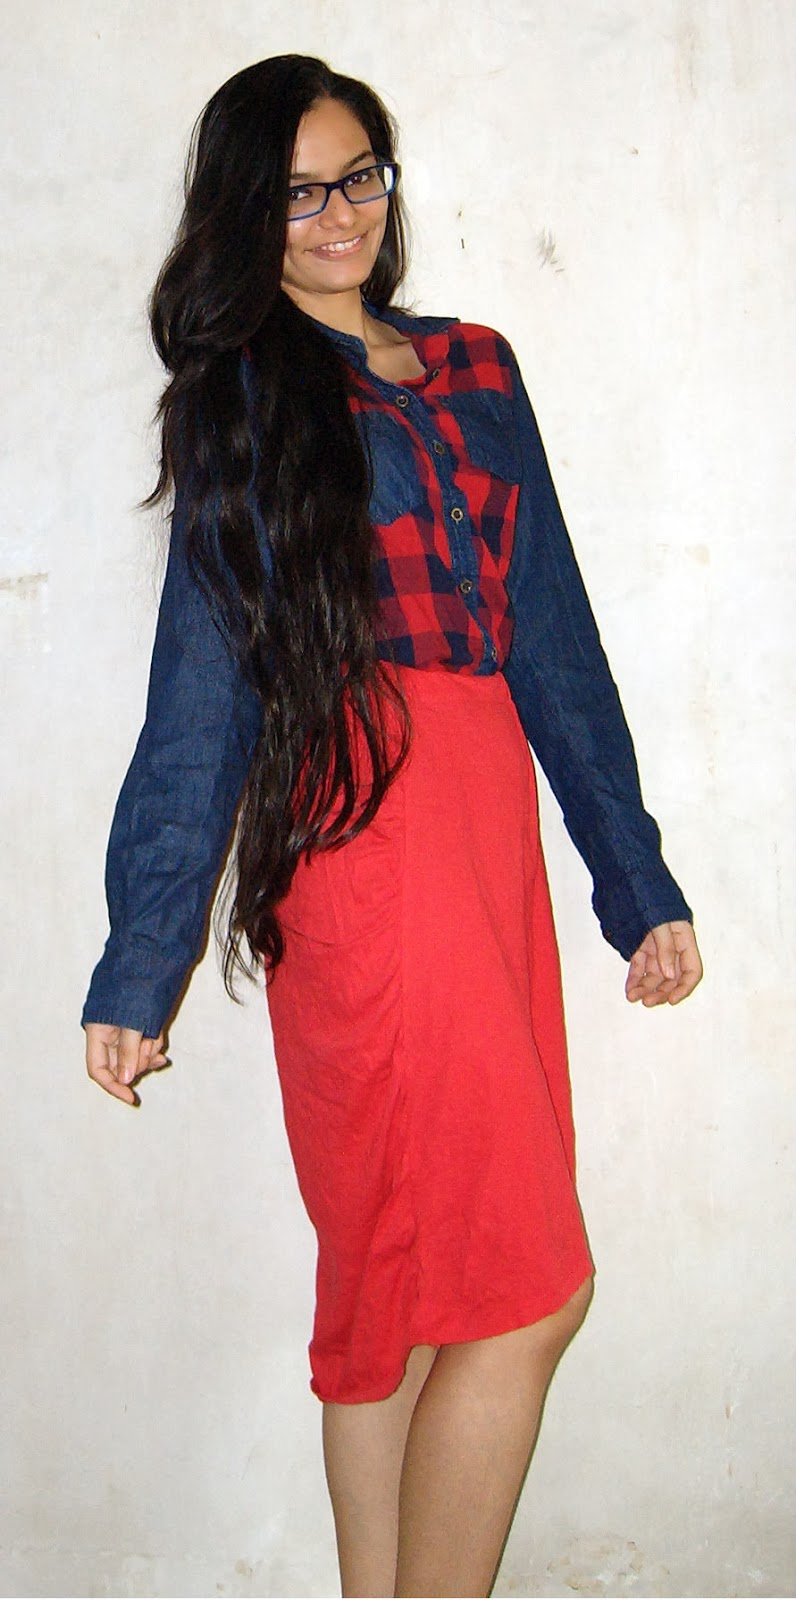 denim patch shirt, how to wear tartan in india, how to style a plaid shirt, red dipped hem skirt, skirts in mumbai, how to wear skirts, streetstyle